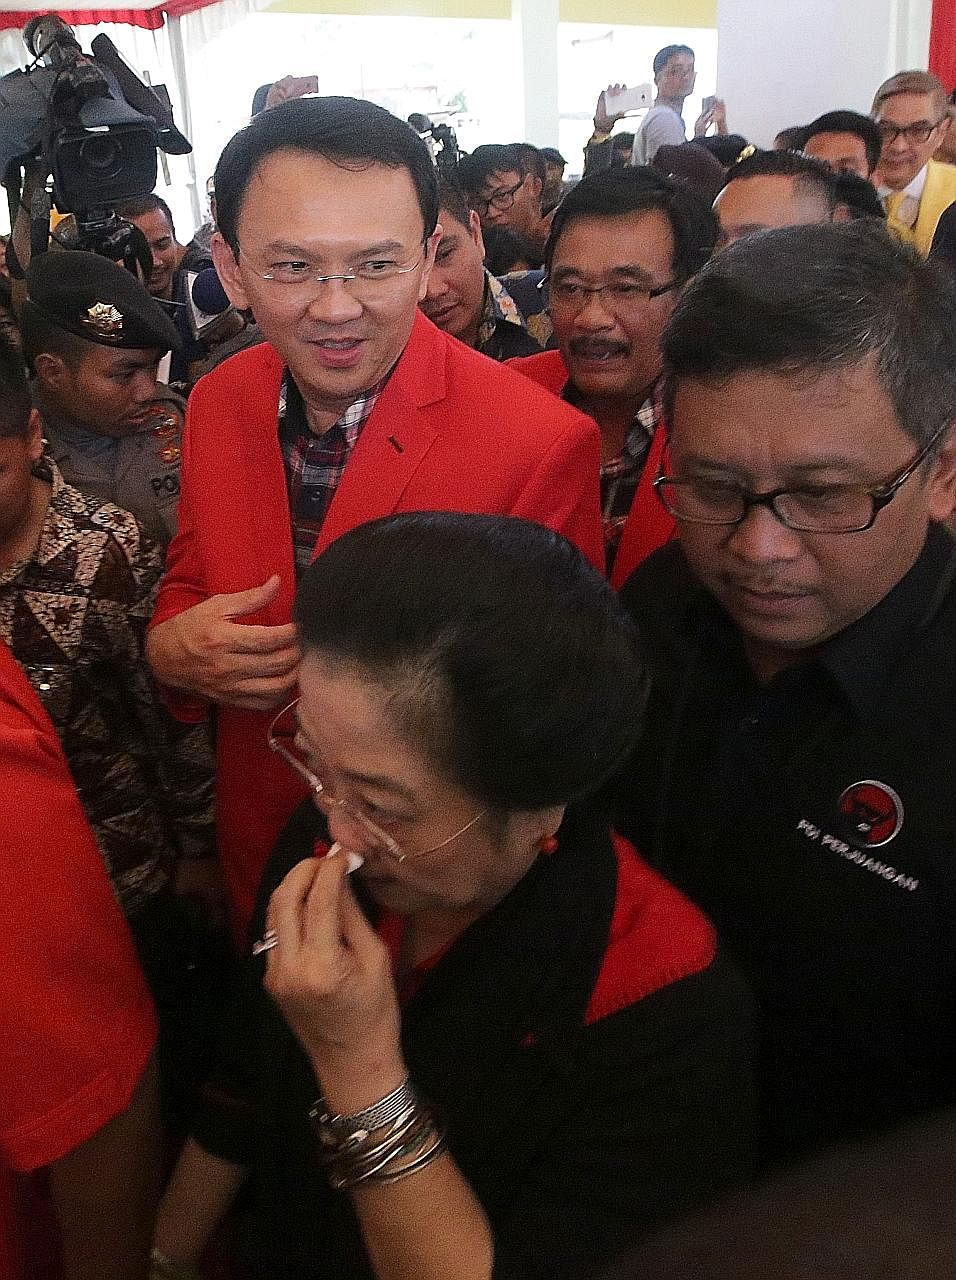 Governor Basuki Tjahaja Purnama (centre) with former president Megawati Sukarnoputri and his deputy Djarot Saiful Hidayat (behind him). Thousands of Muslim hardliners are expected to arrive from outside the city on Friday to join Muslims in Jakarta i